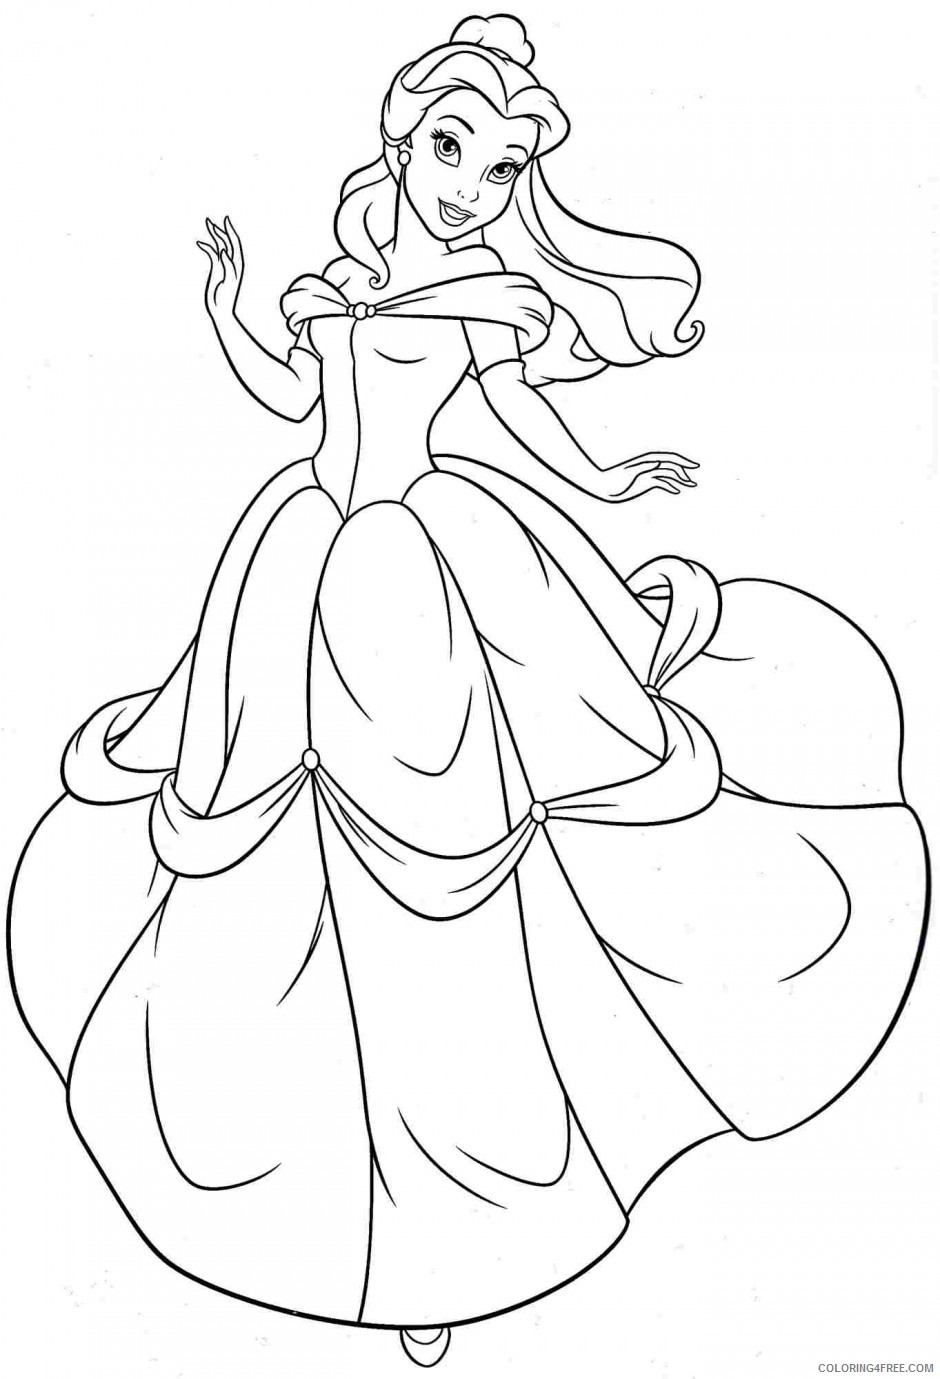 belle coloring pages dancing Coloring4free